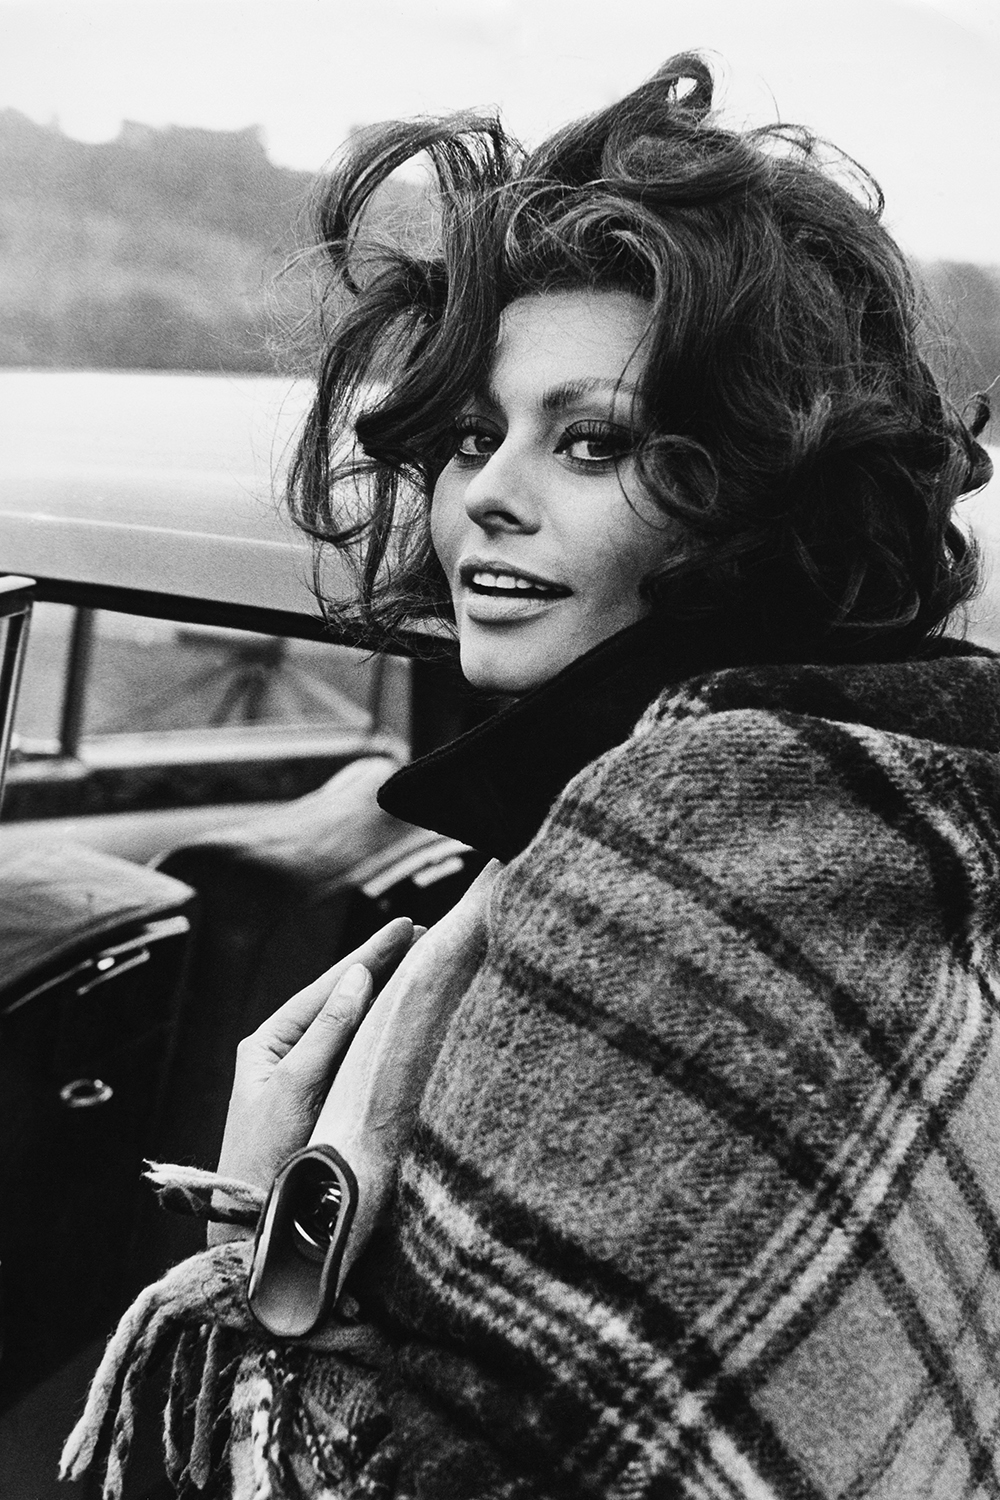 Sophia Loren Pressured To Get A Nose Job As A Young Actress | The ...